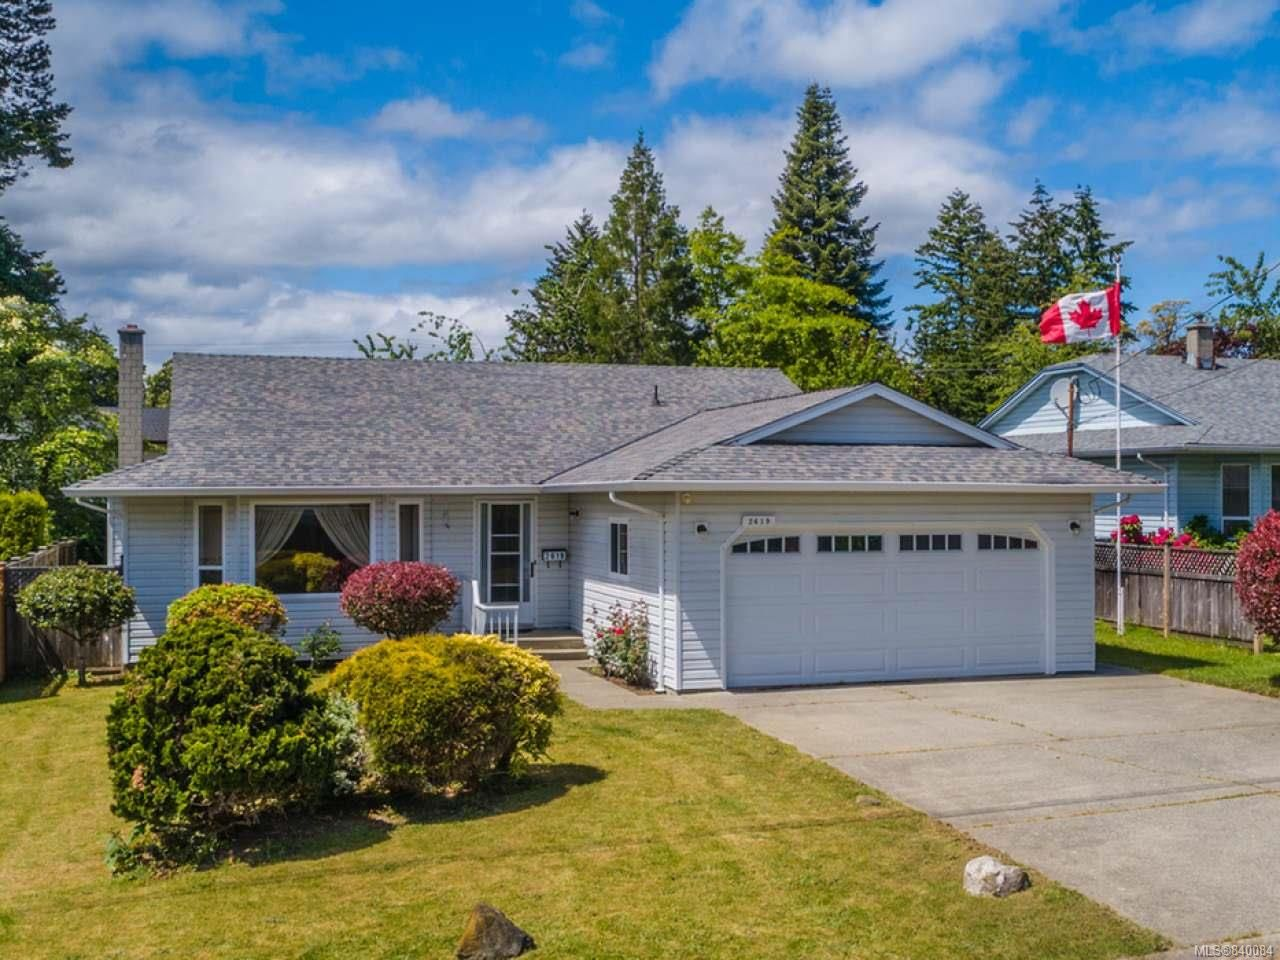 Main Photo: 2619 Quill Dr in NANAIMO: Na Diver Lake House for sale (Nanaimo)  : MLS®# 840084